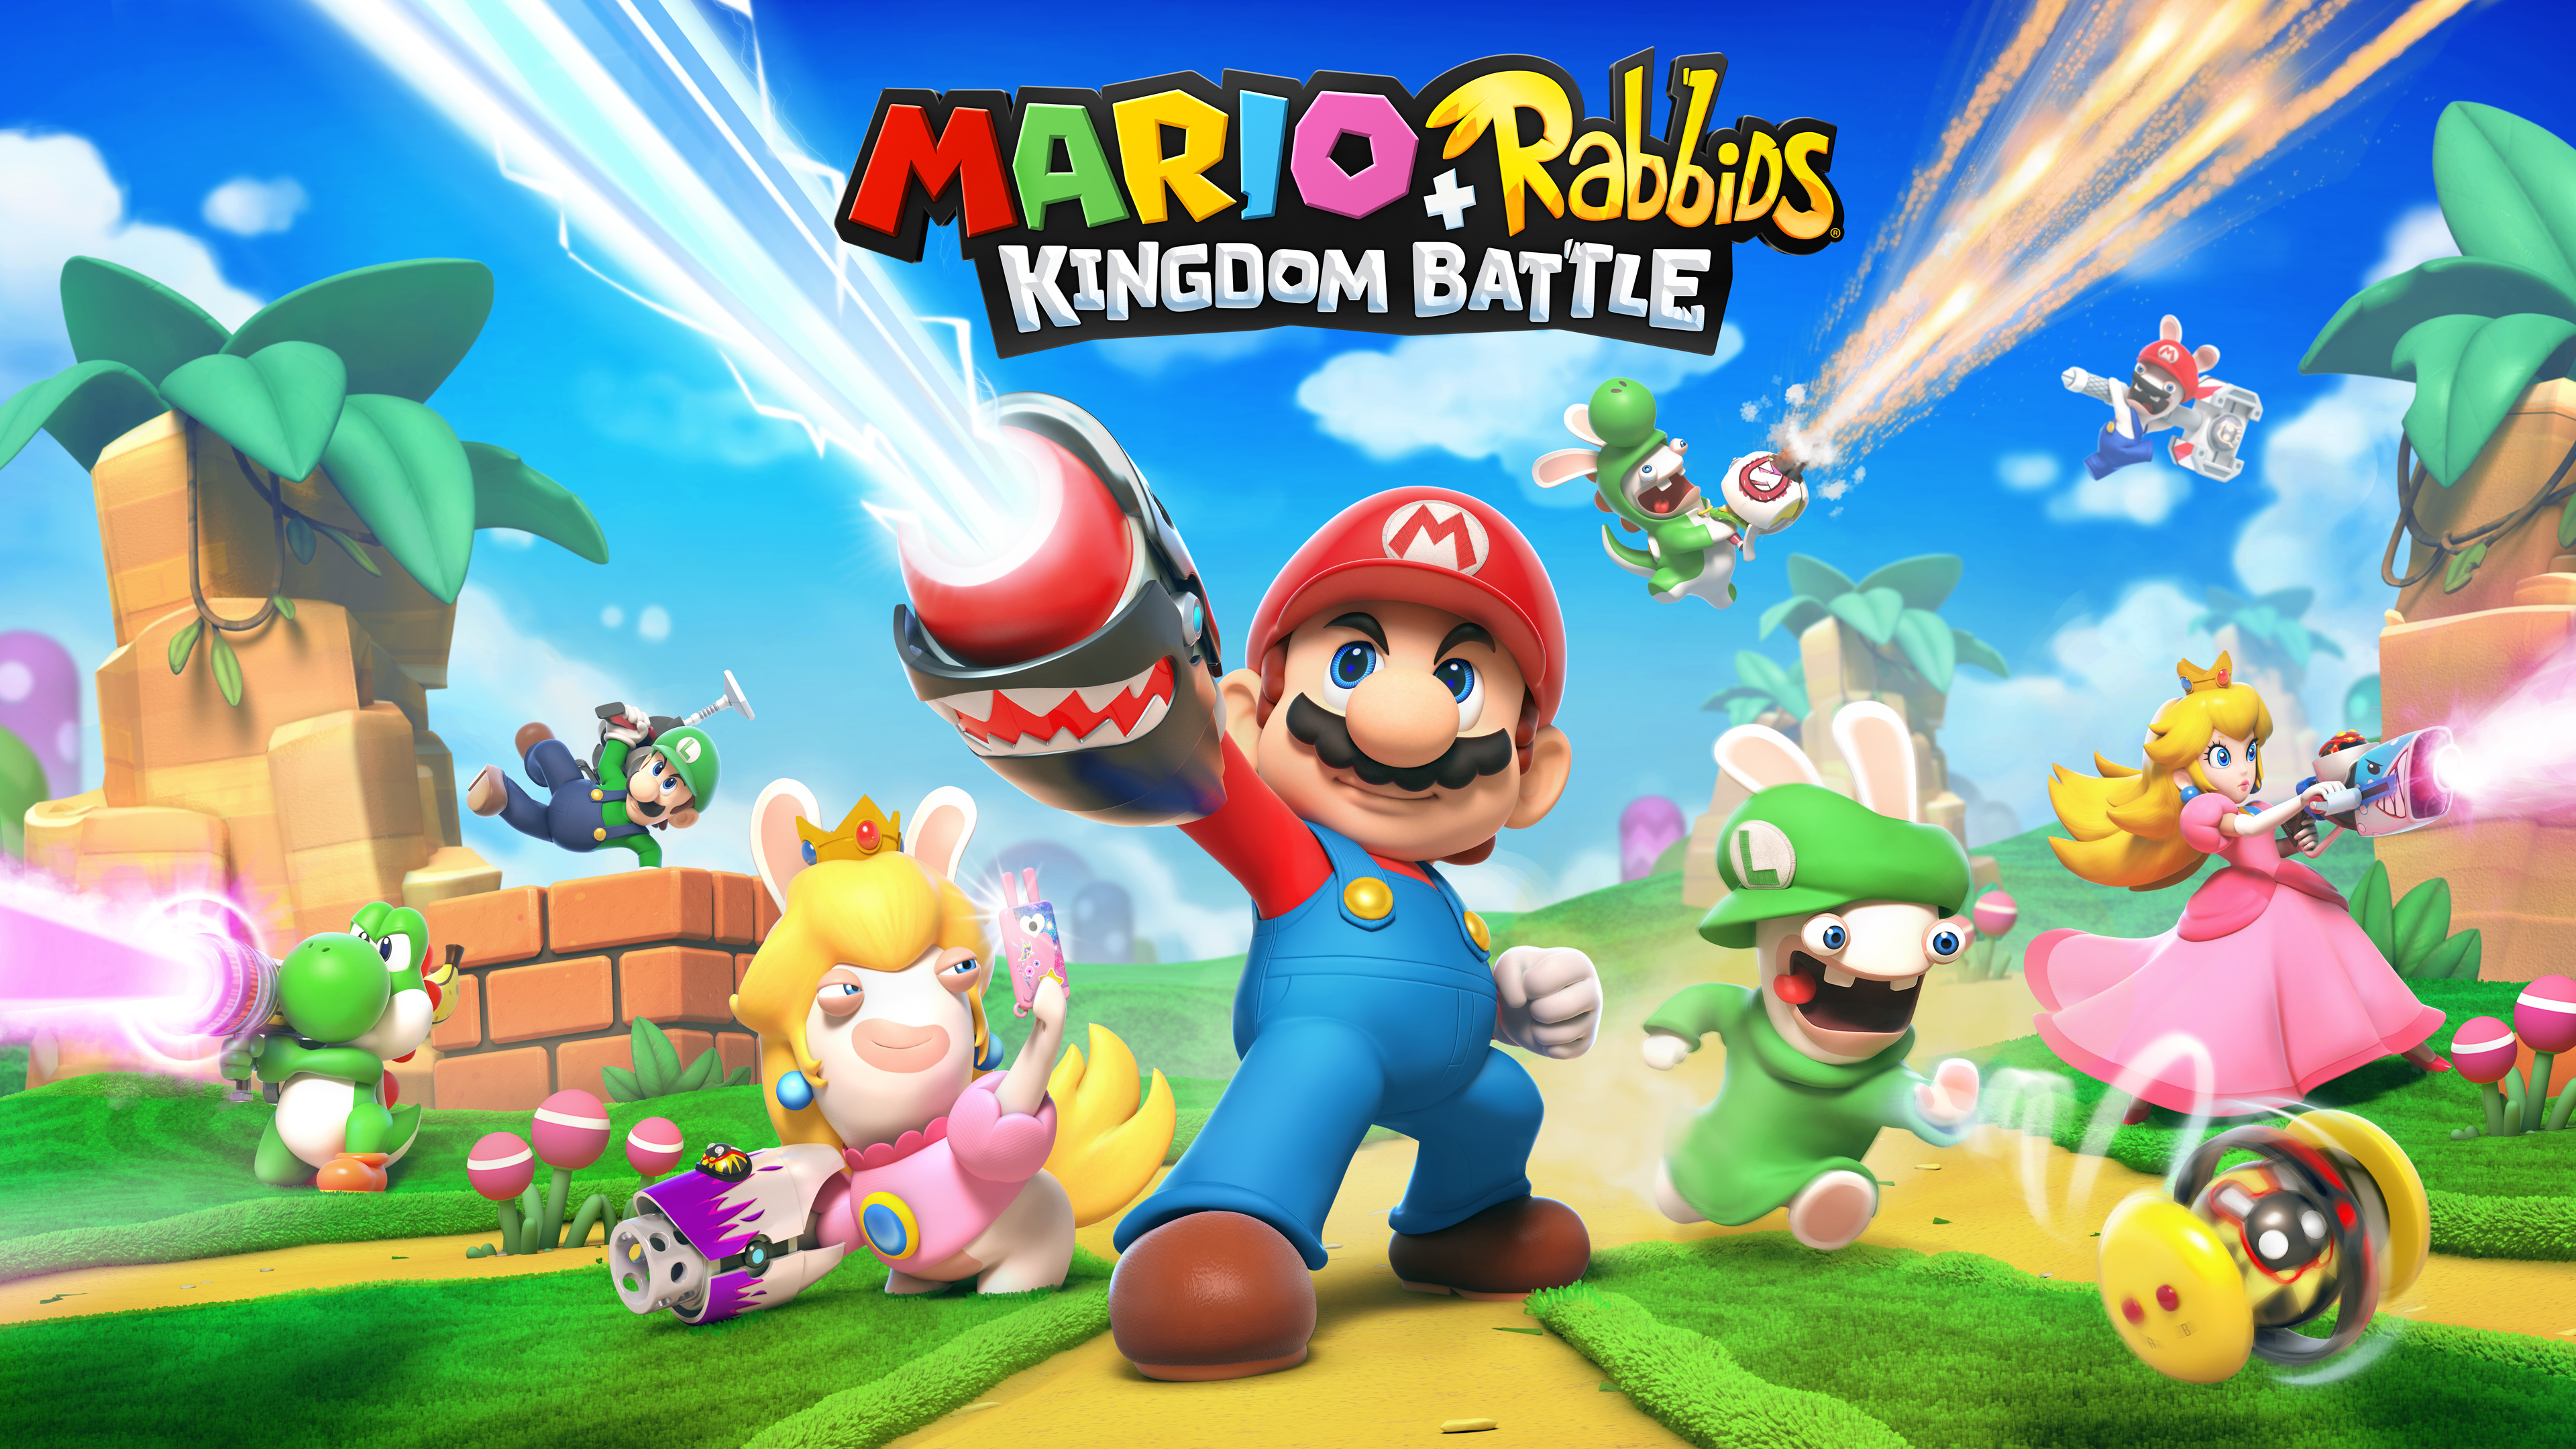 Mario + Rabbids Kingdom Battle Soundtrack Now Available On Bandcamp